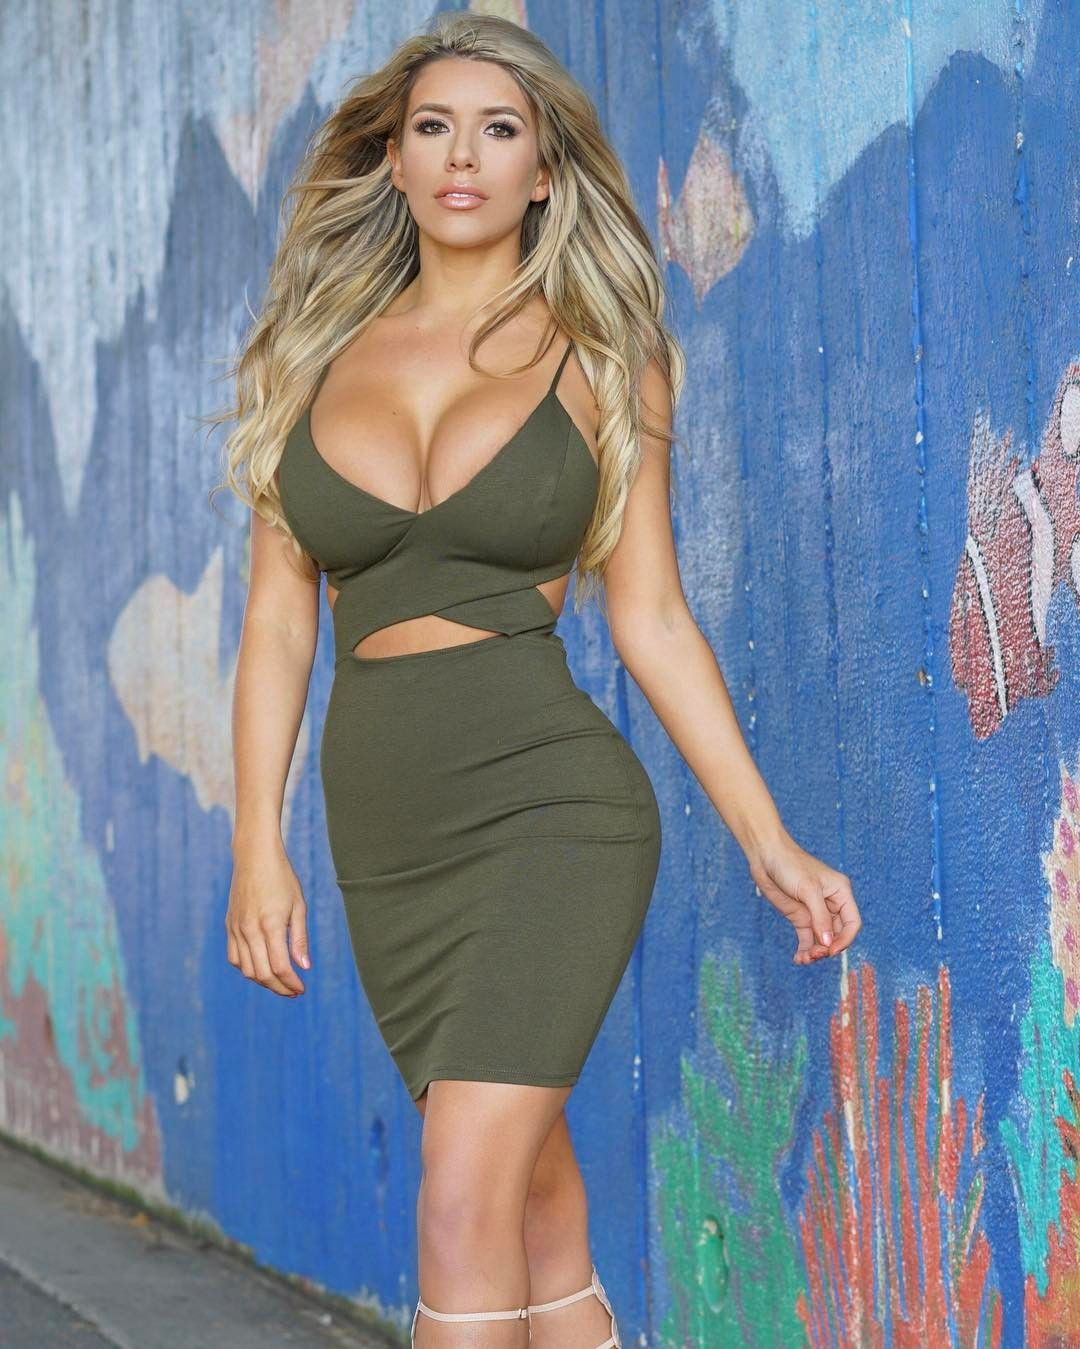 Pin On Chantel Zales 1991 height5' 7 hair color brunette eye color hazel. pin on chantel zales